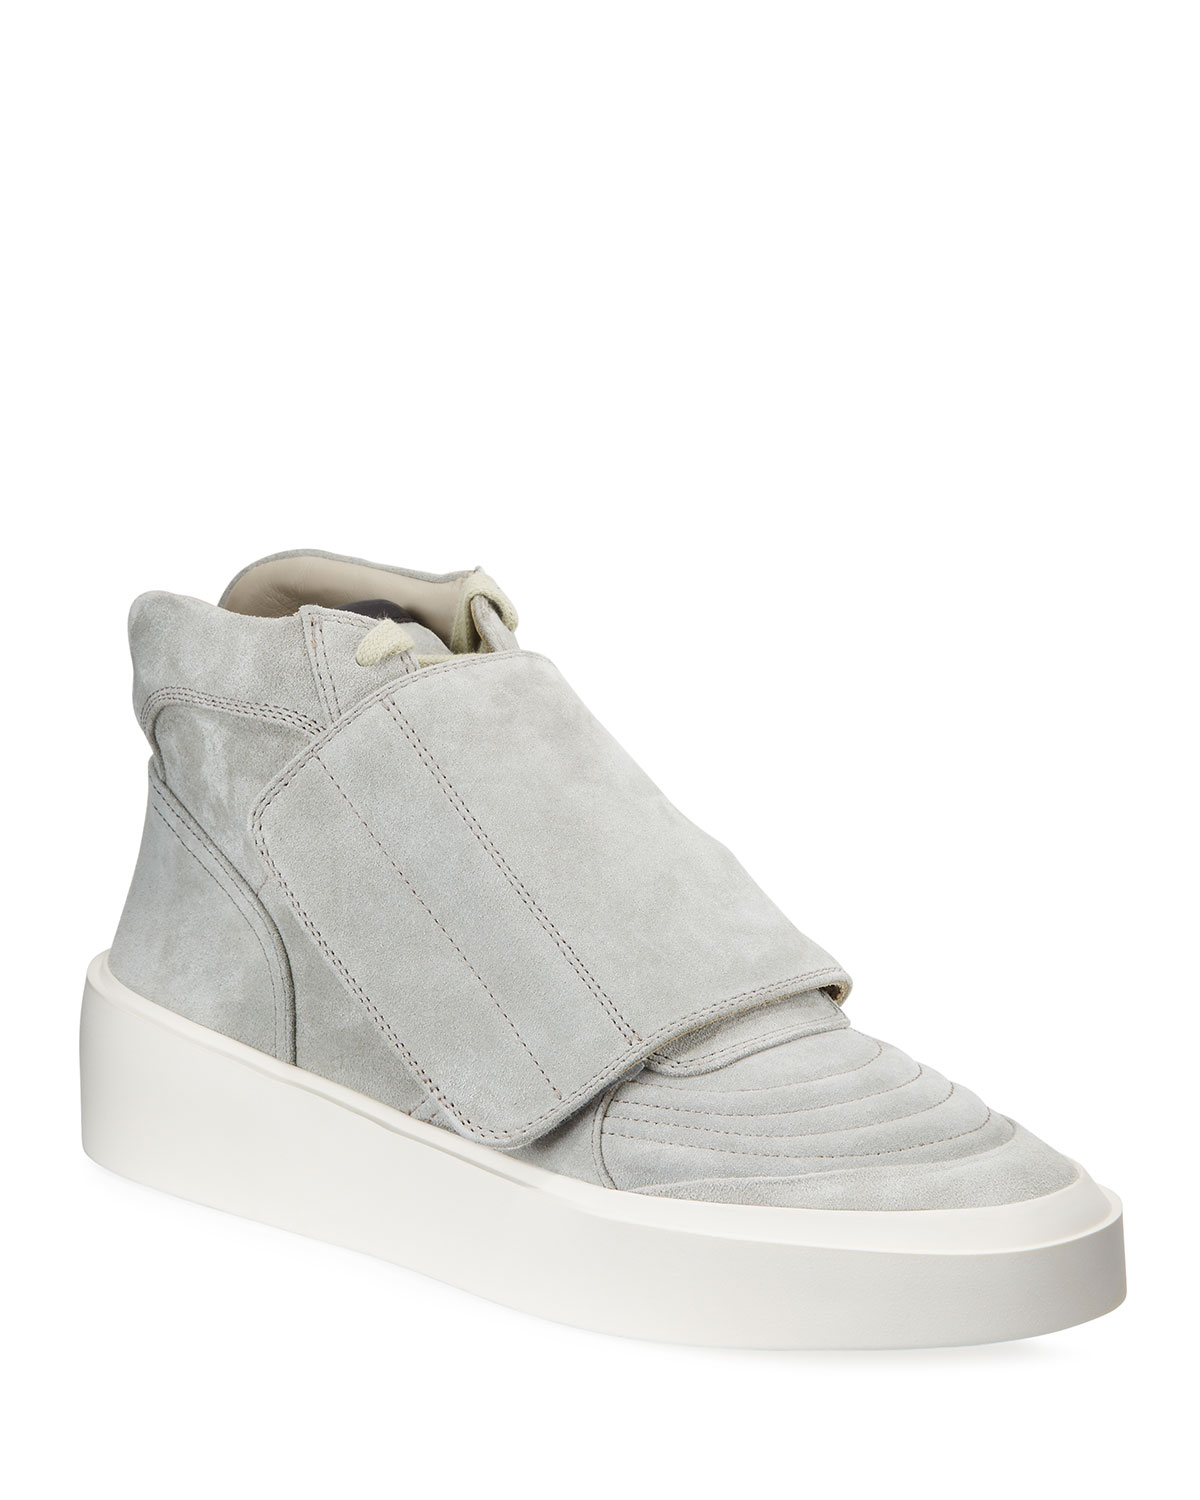 Fear Of God Sneakers MEN'S SKATE MID-TOP SUEDE SNEAKERS